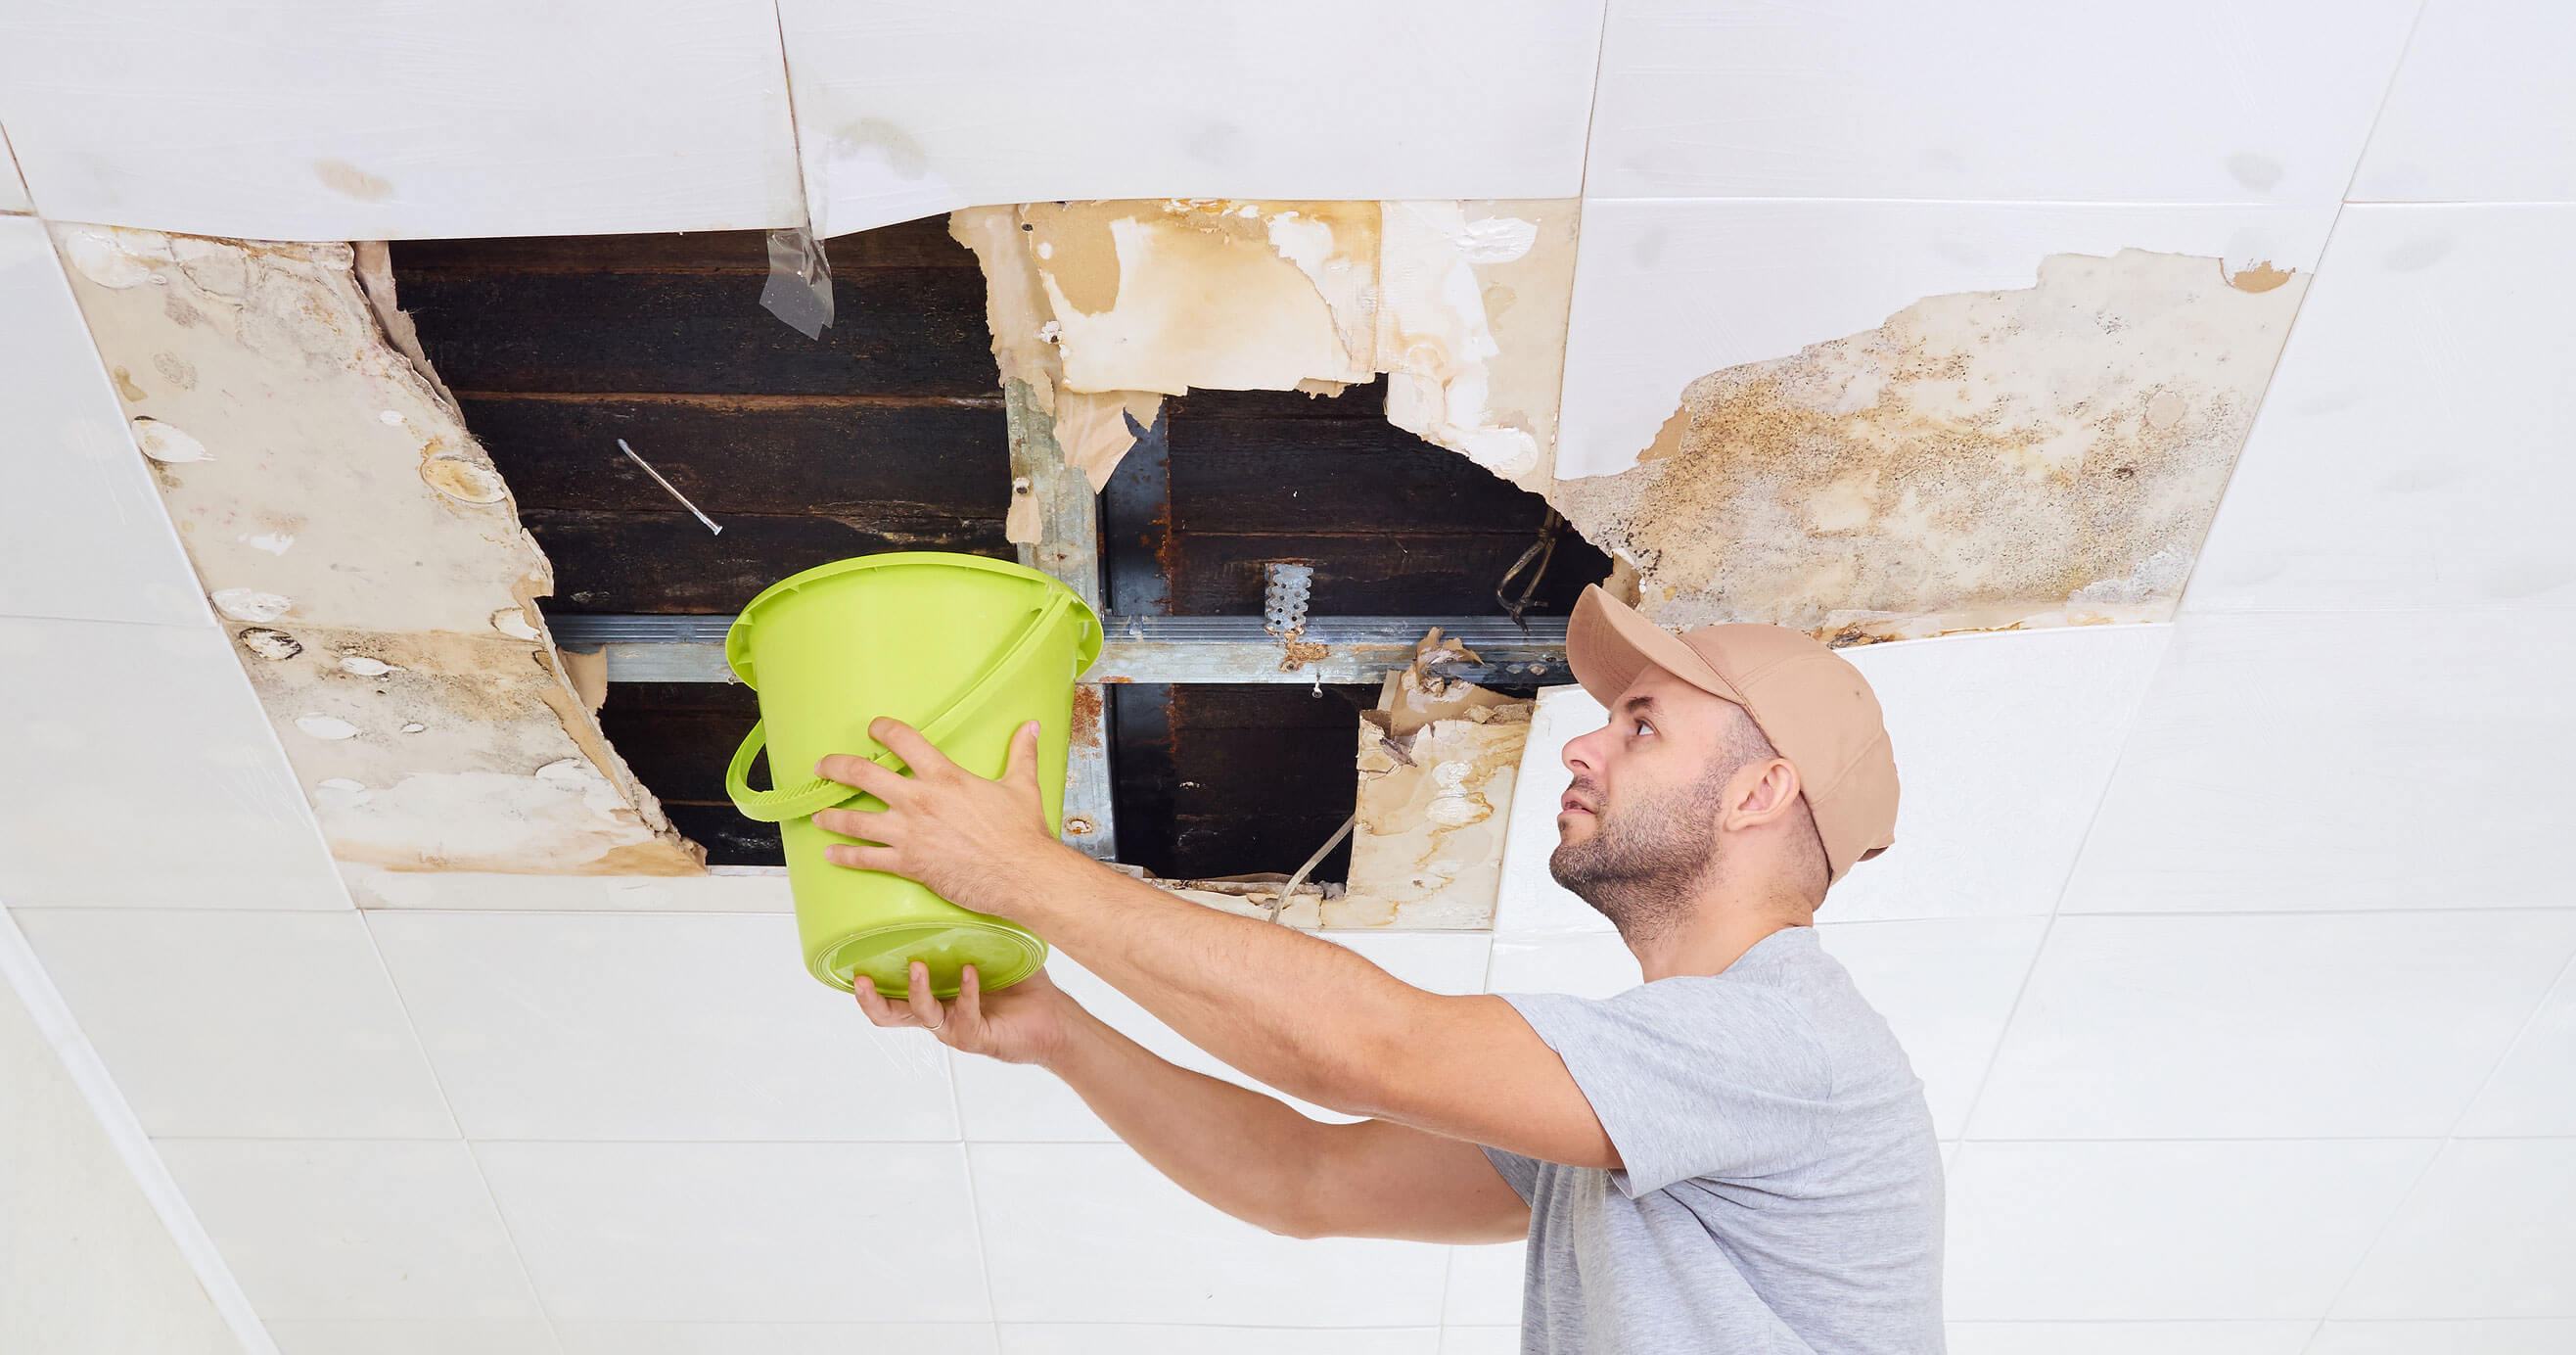 Man hold a bucket under a leak in ceiling